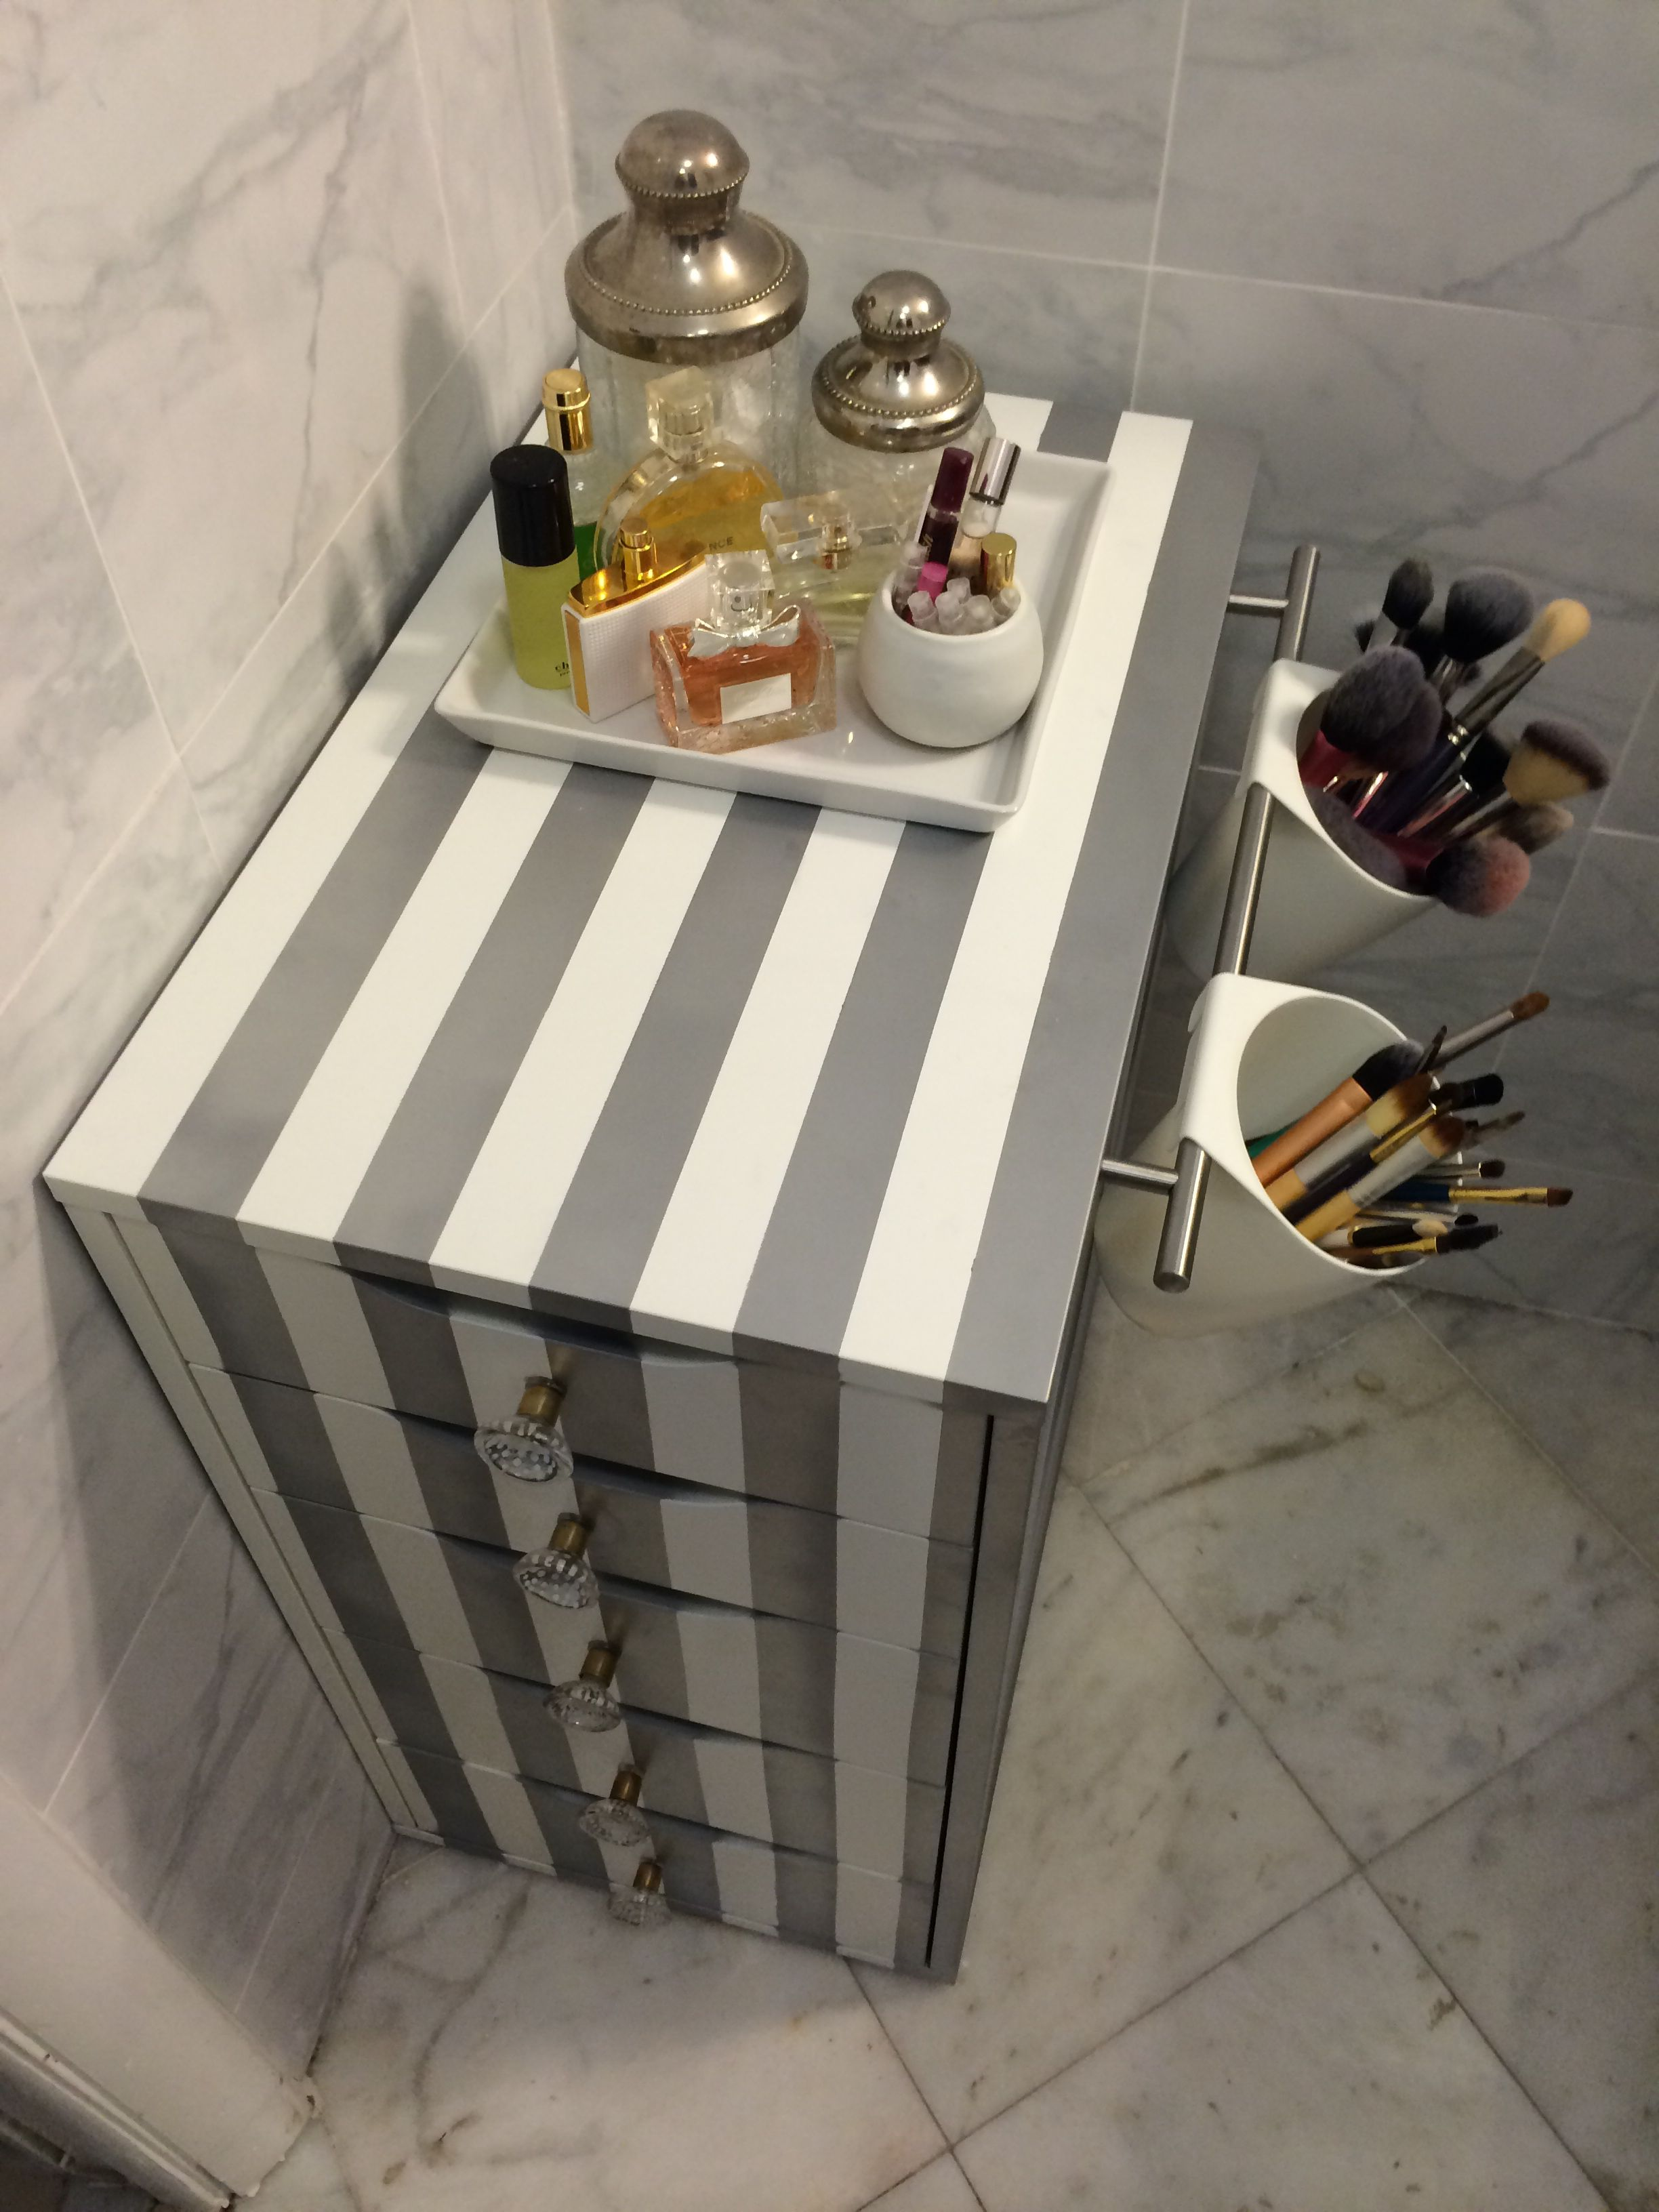 Pin by sapphron phillipson on makeup storage in pinterest